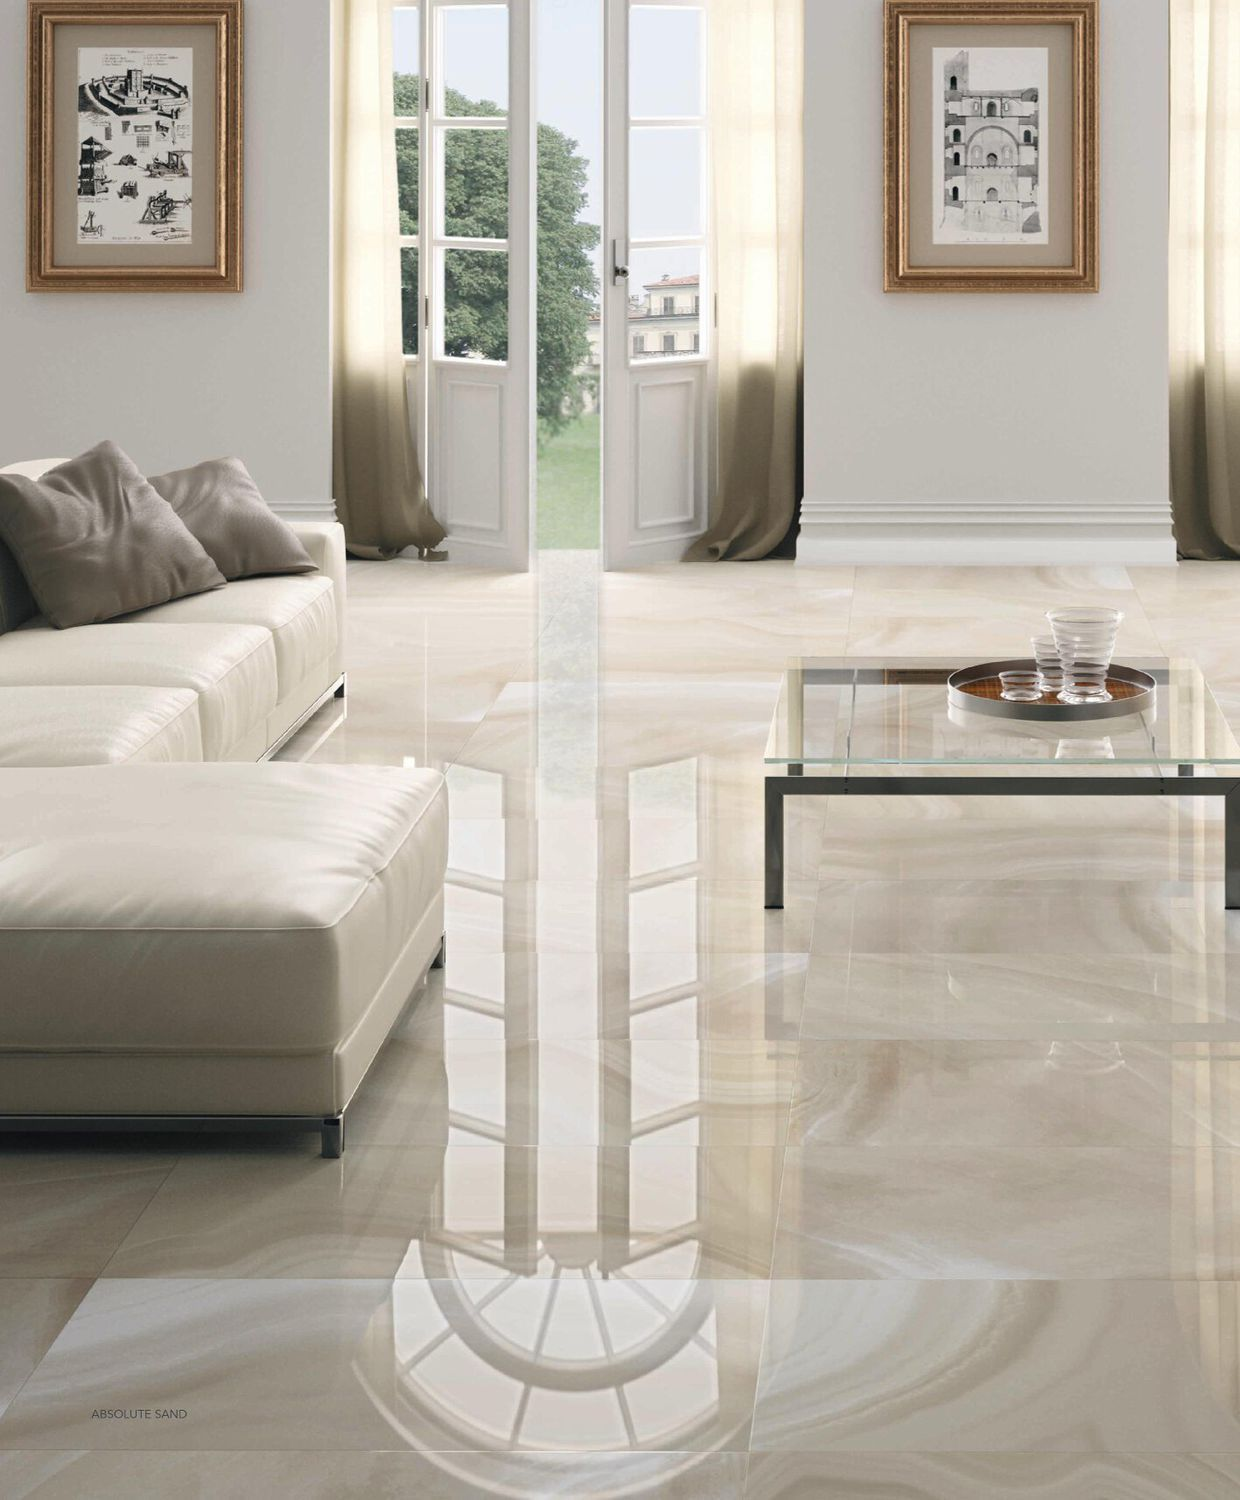 Floor tile / porcelain stoneware / high-gloss / stone look HIGH GLOSS :  ABSOLUTE